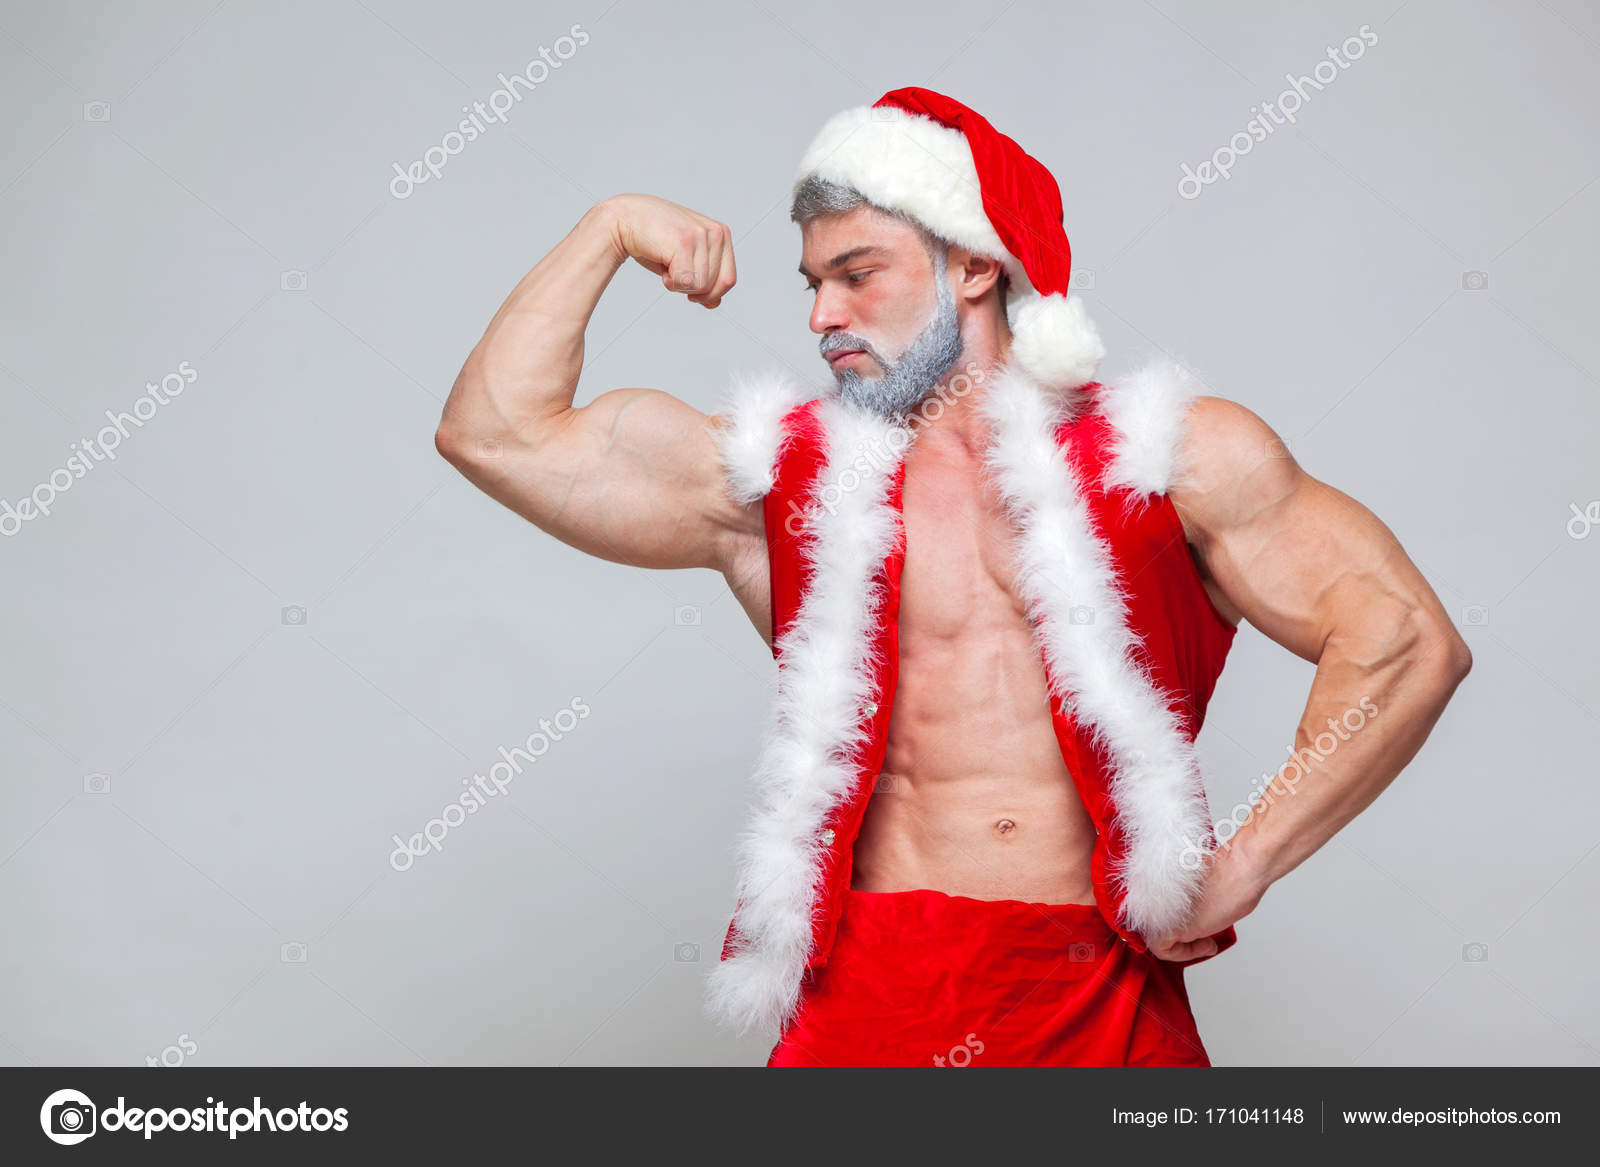 Secret santa 2018 Depositphotos_171041148-stock-photo-christmas-sexy-santa-claus-young